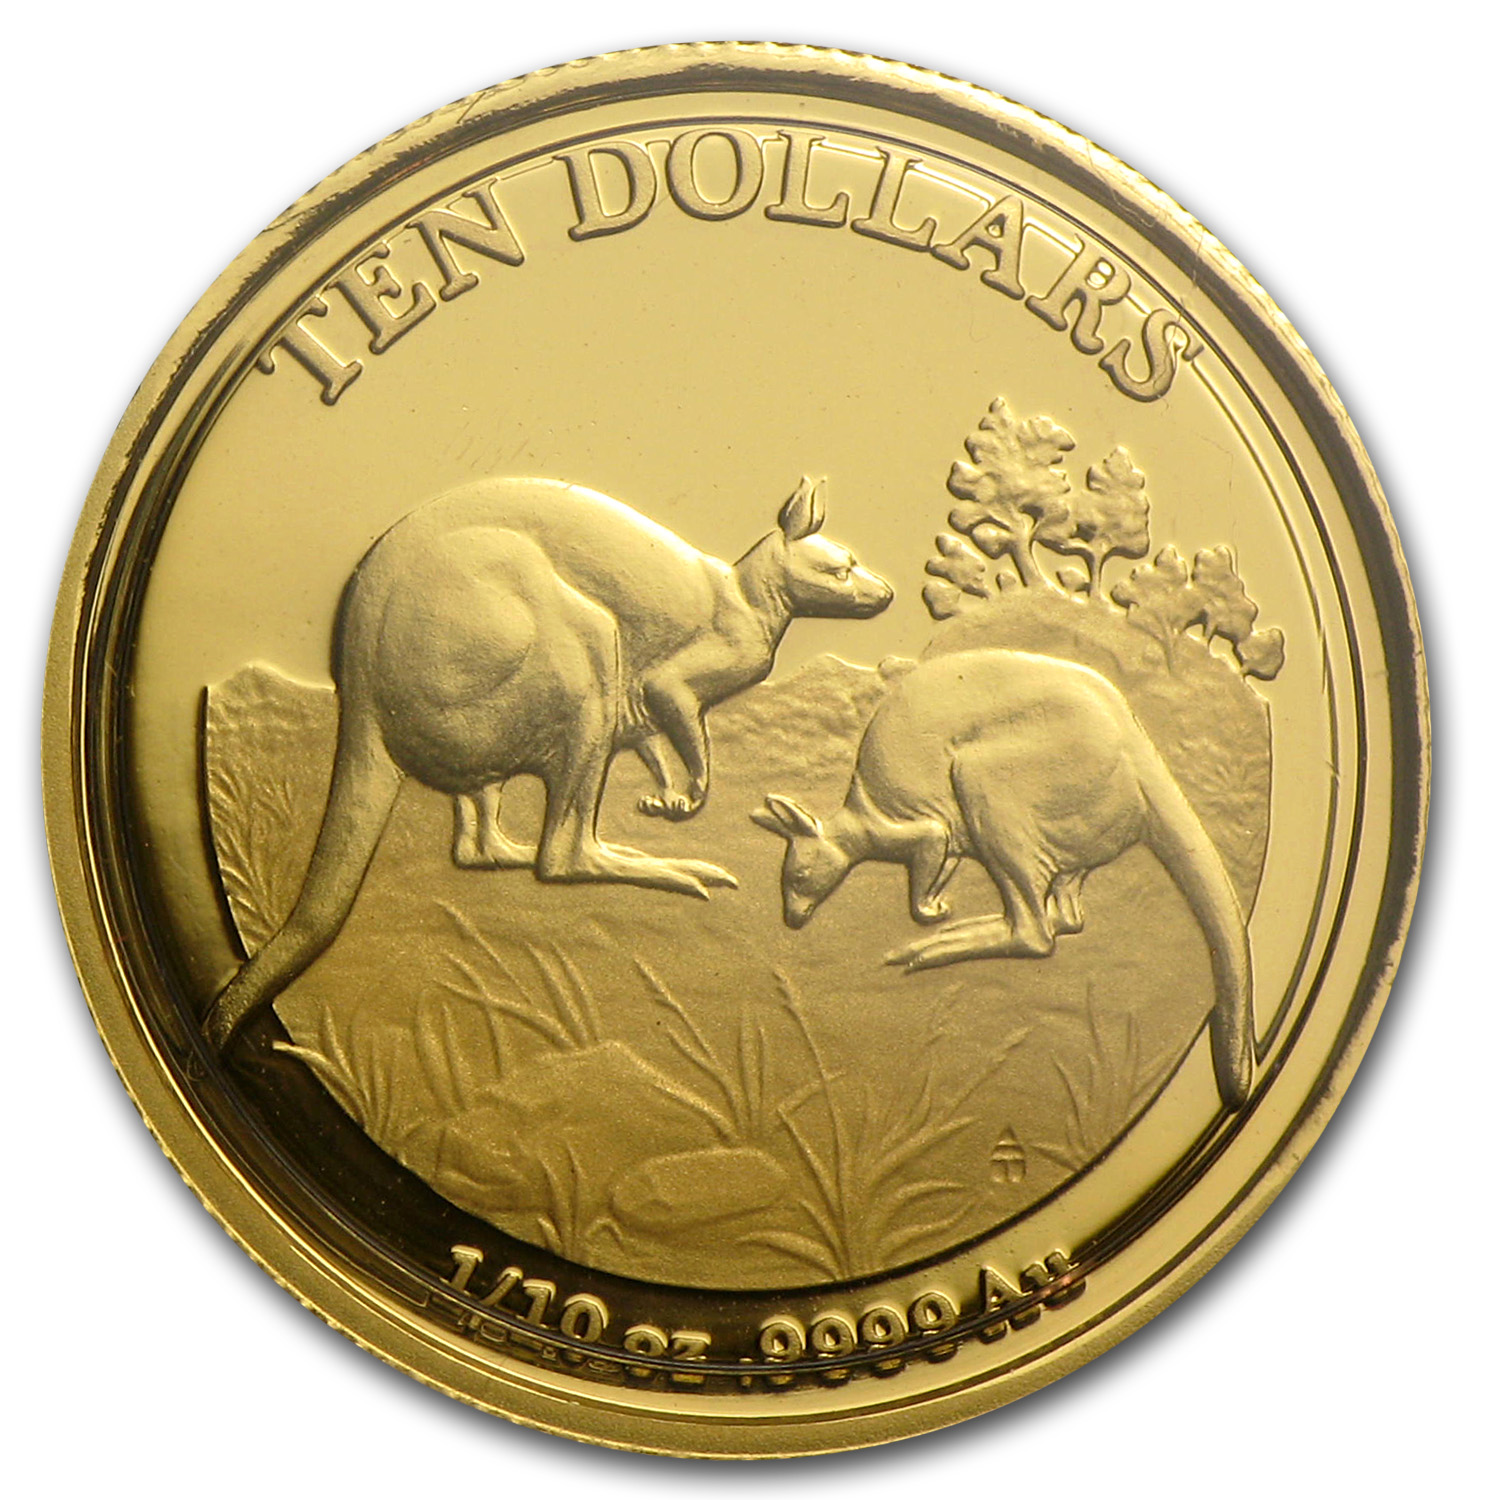 2014 Australia 1/10 oz Proof Gold Kangaroo